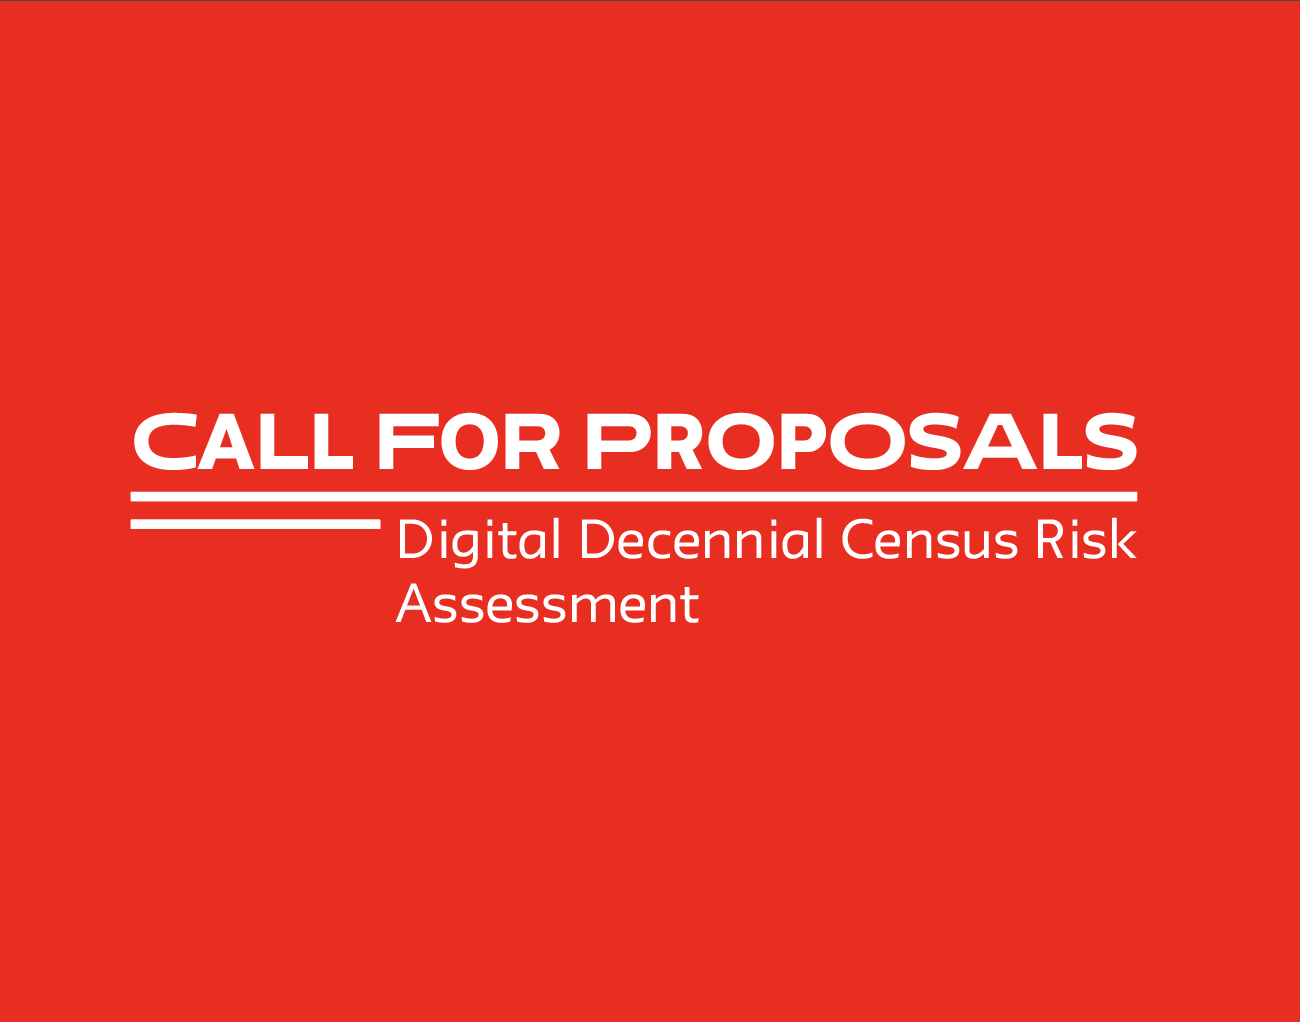 Call for Proposals: Digital Decennial Census Risk Assessment